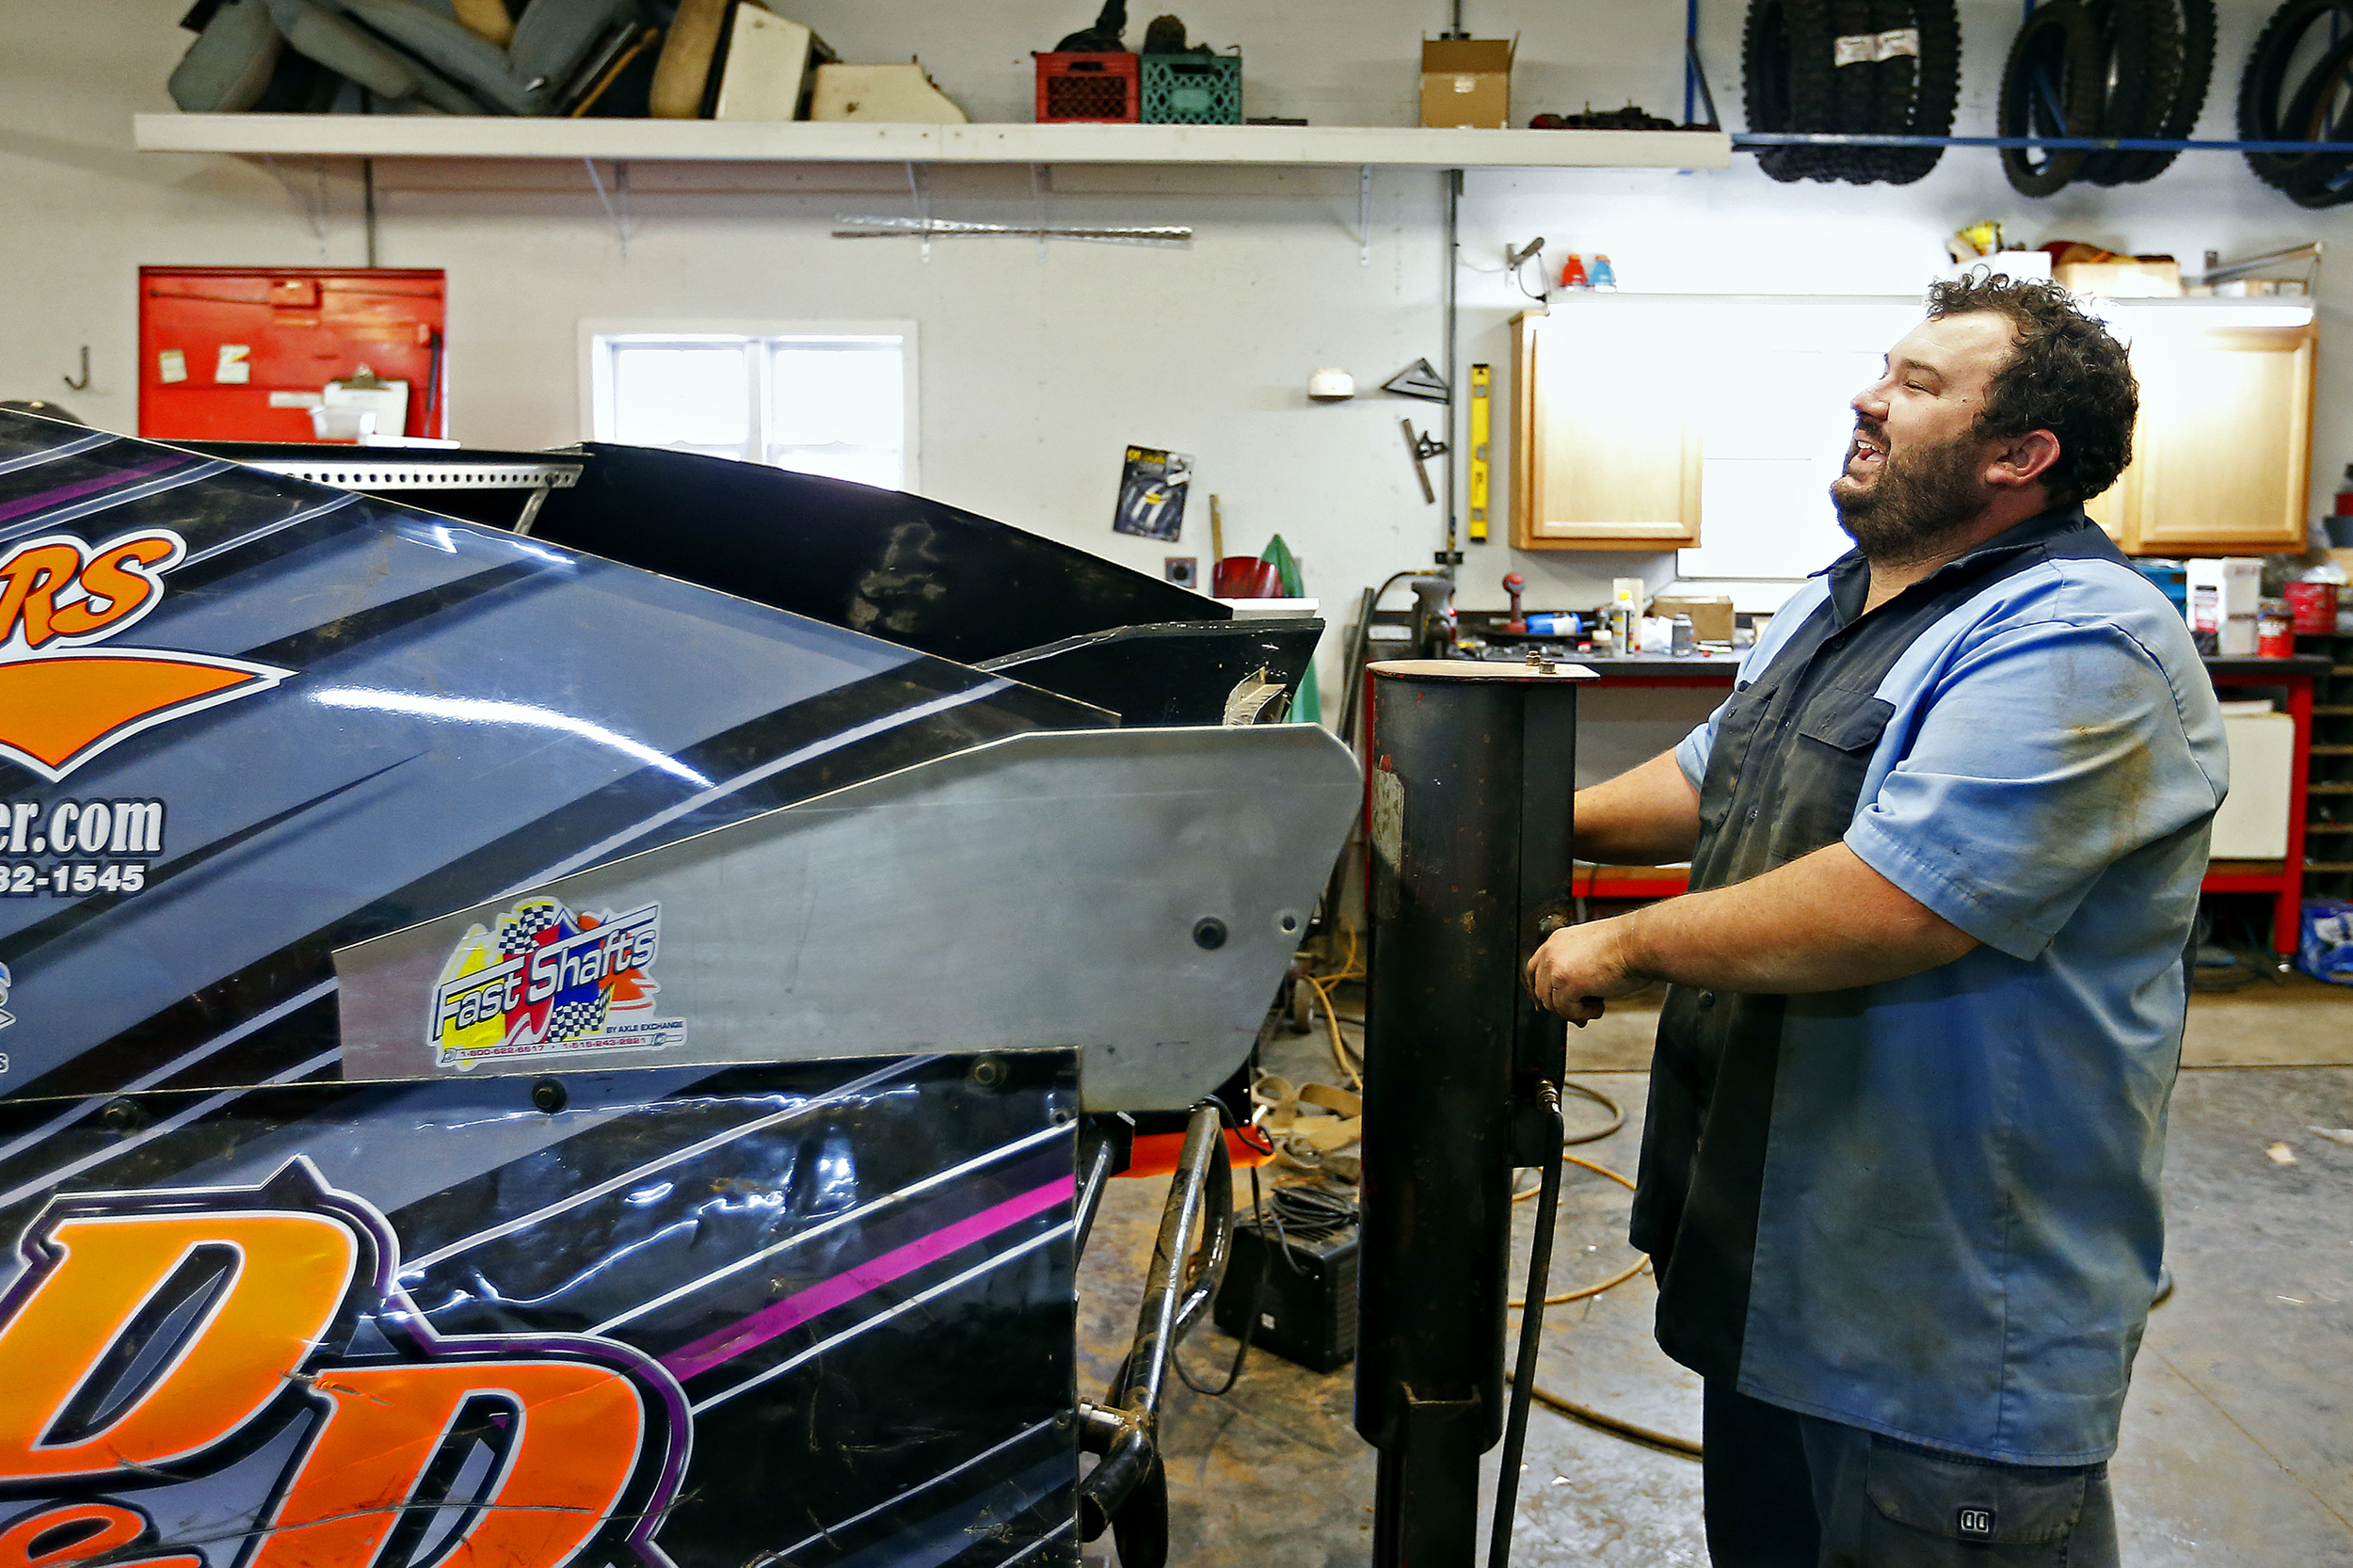 Mickey Burrell laughs as he and Elston Moore put the finishing touches on Burrell's car before heading to race at Springfield Raceway in Springfield, Mo. on July 25, 2015.